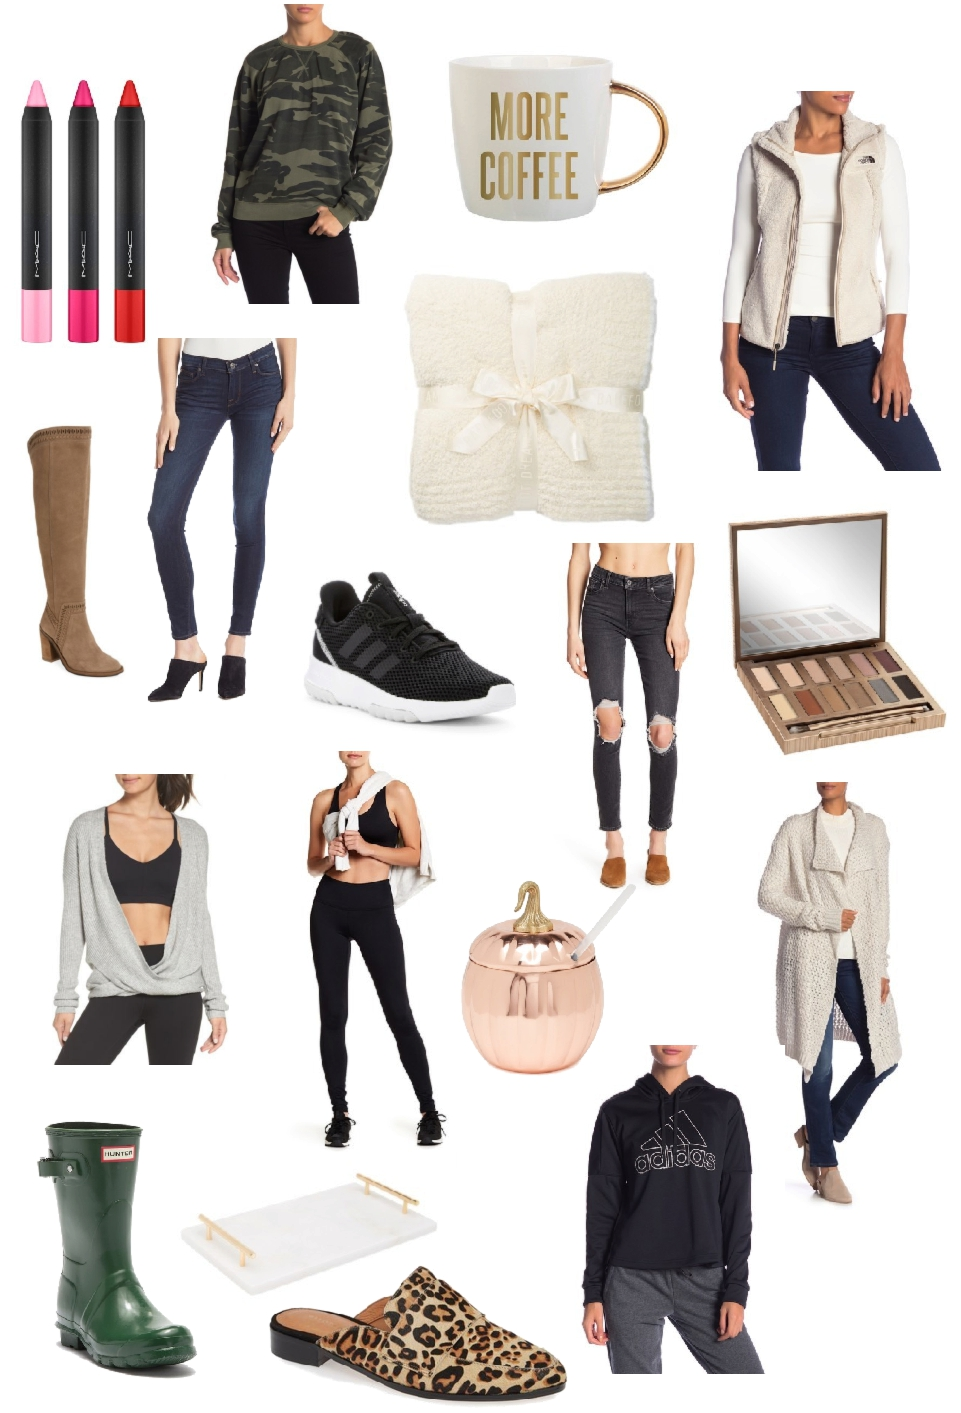 Fall Finds at Nordstrom Rack, fall fashion 2018, designer clothes and shoes at a discount